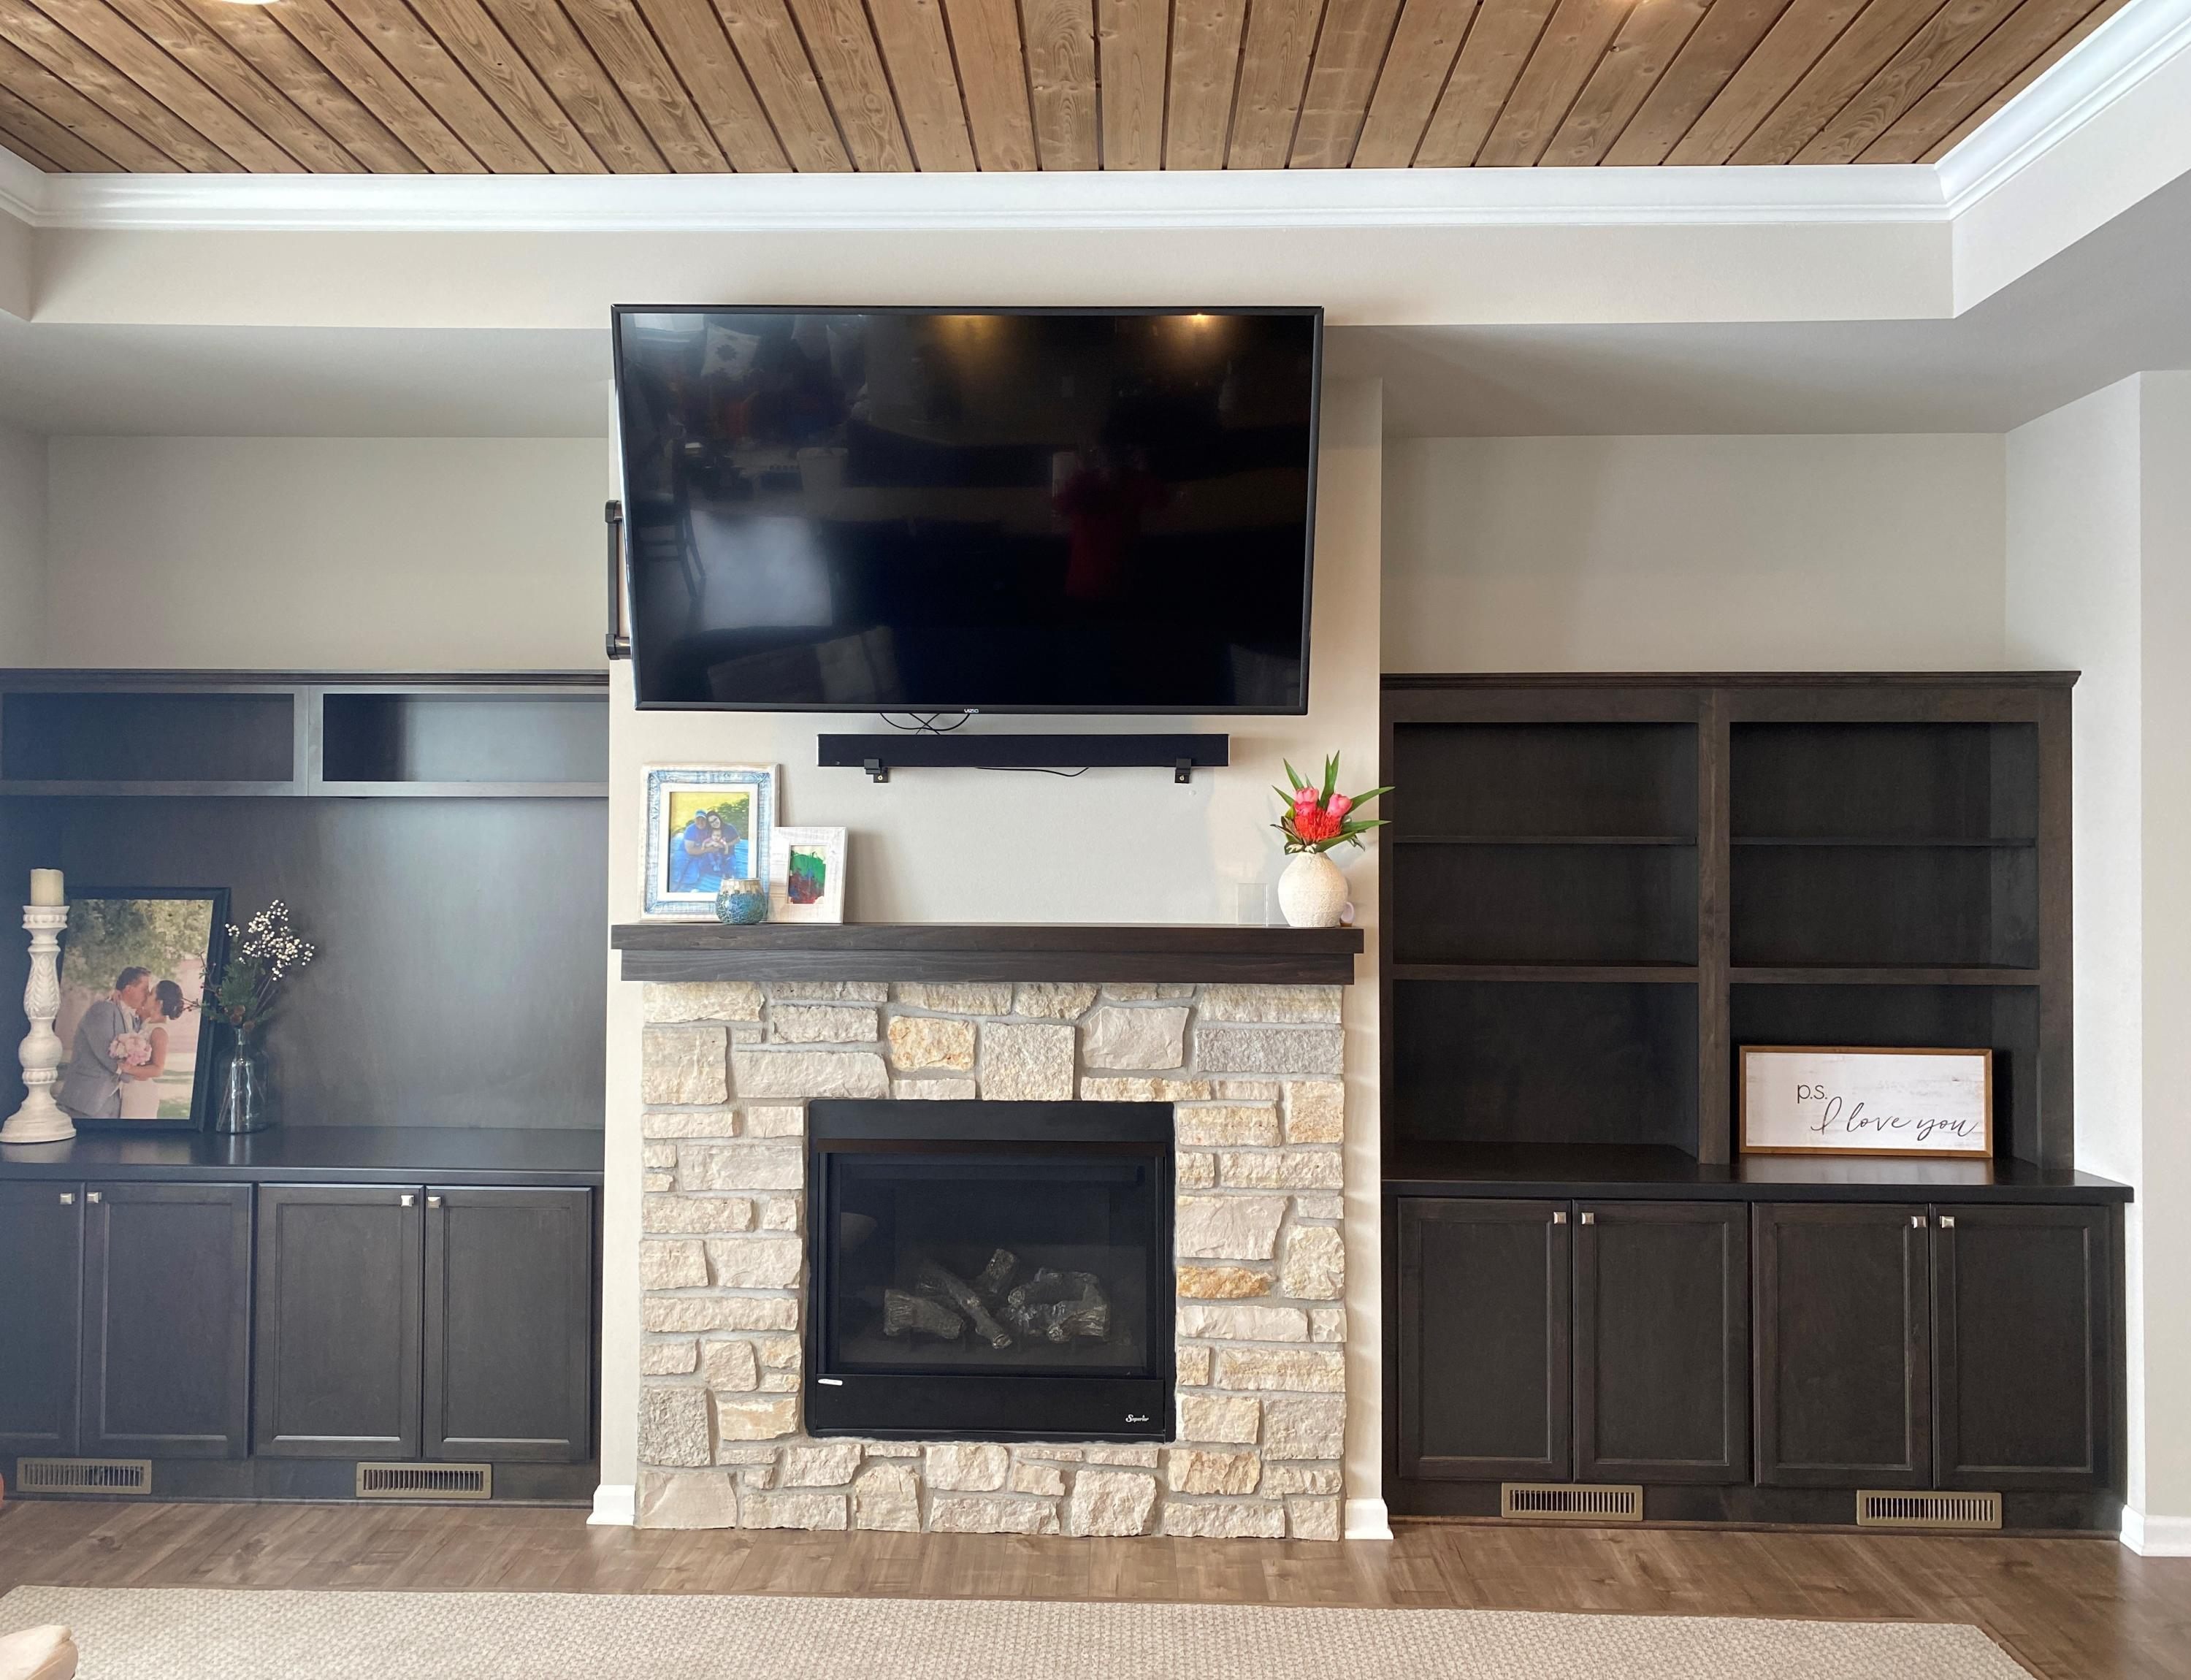 fire place and book shelves